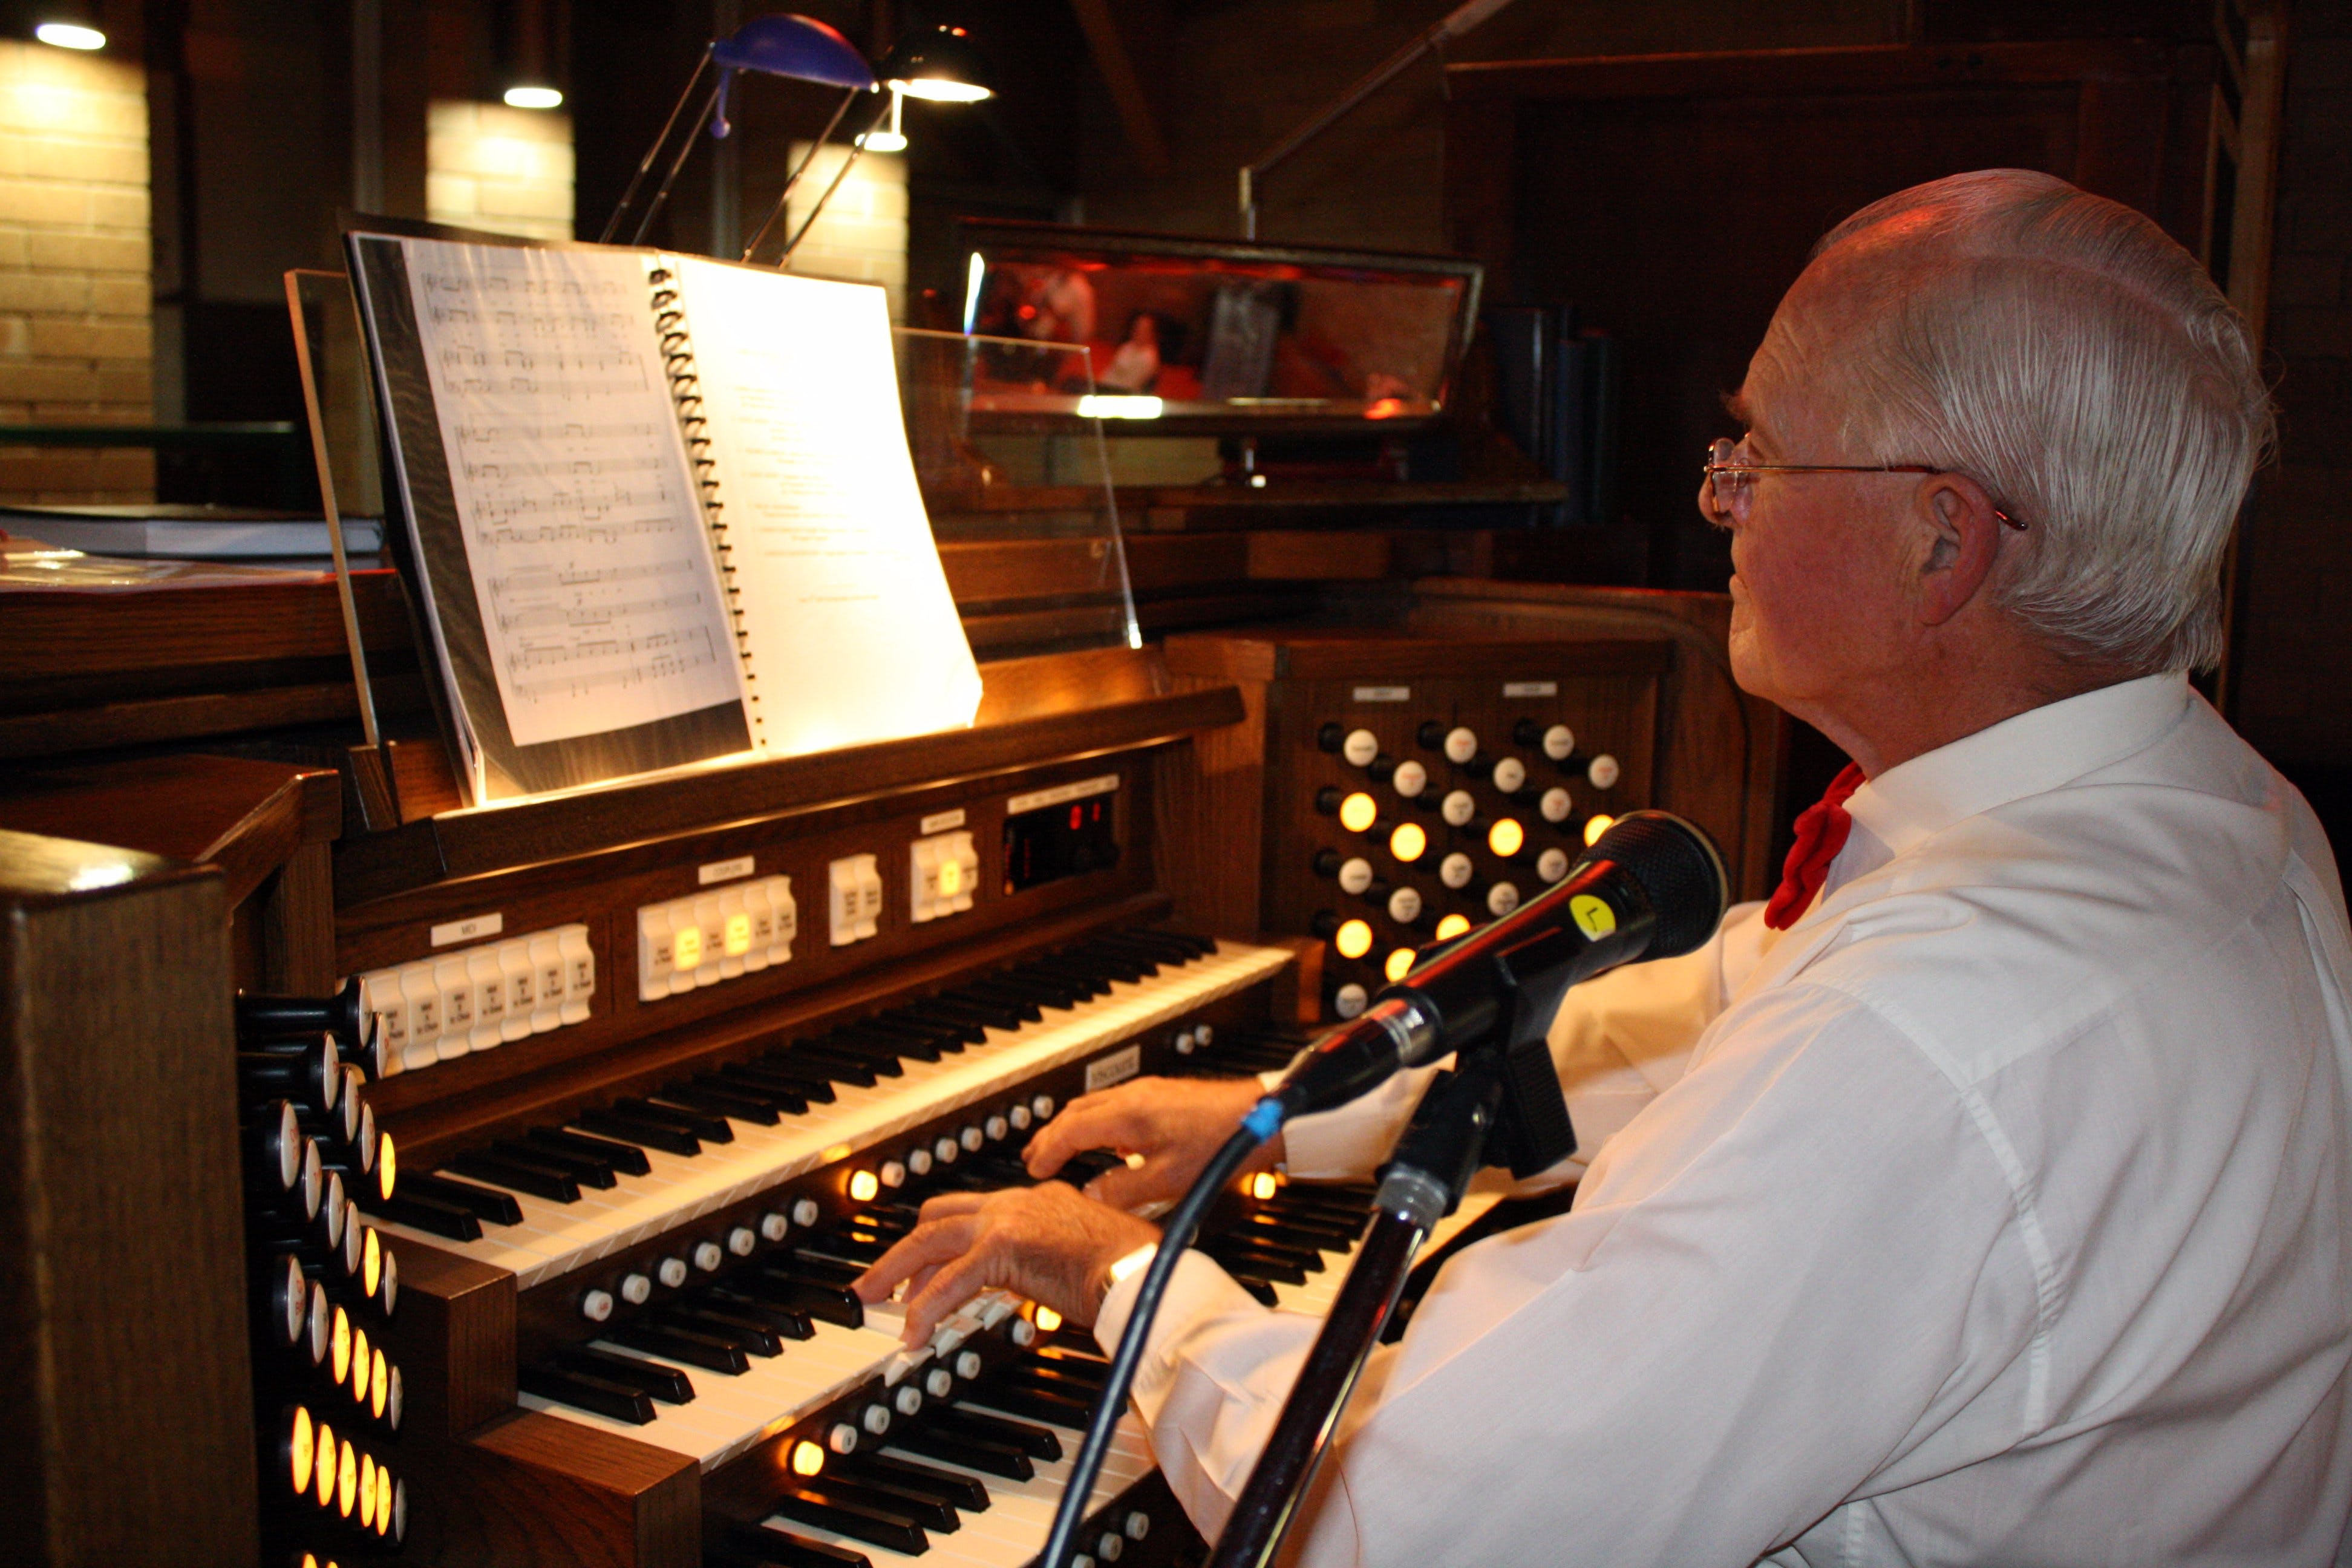 St Bartholomews Largest Digital Pipe Organ in the Southern Hemisphere